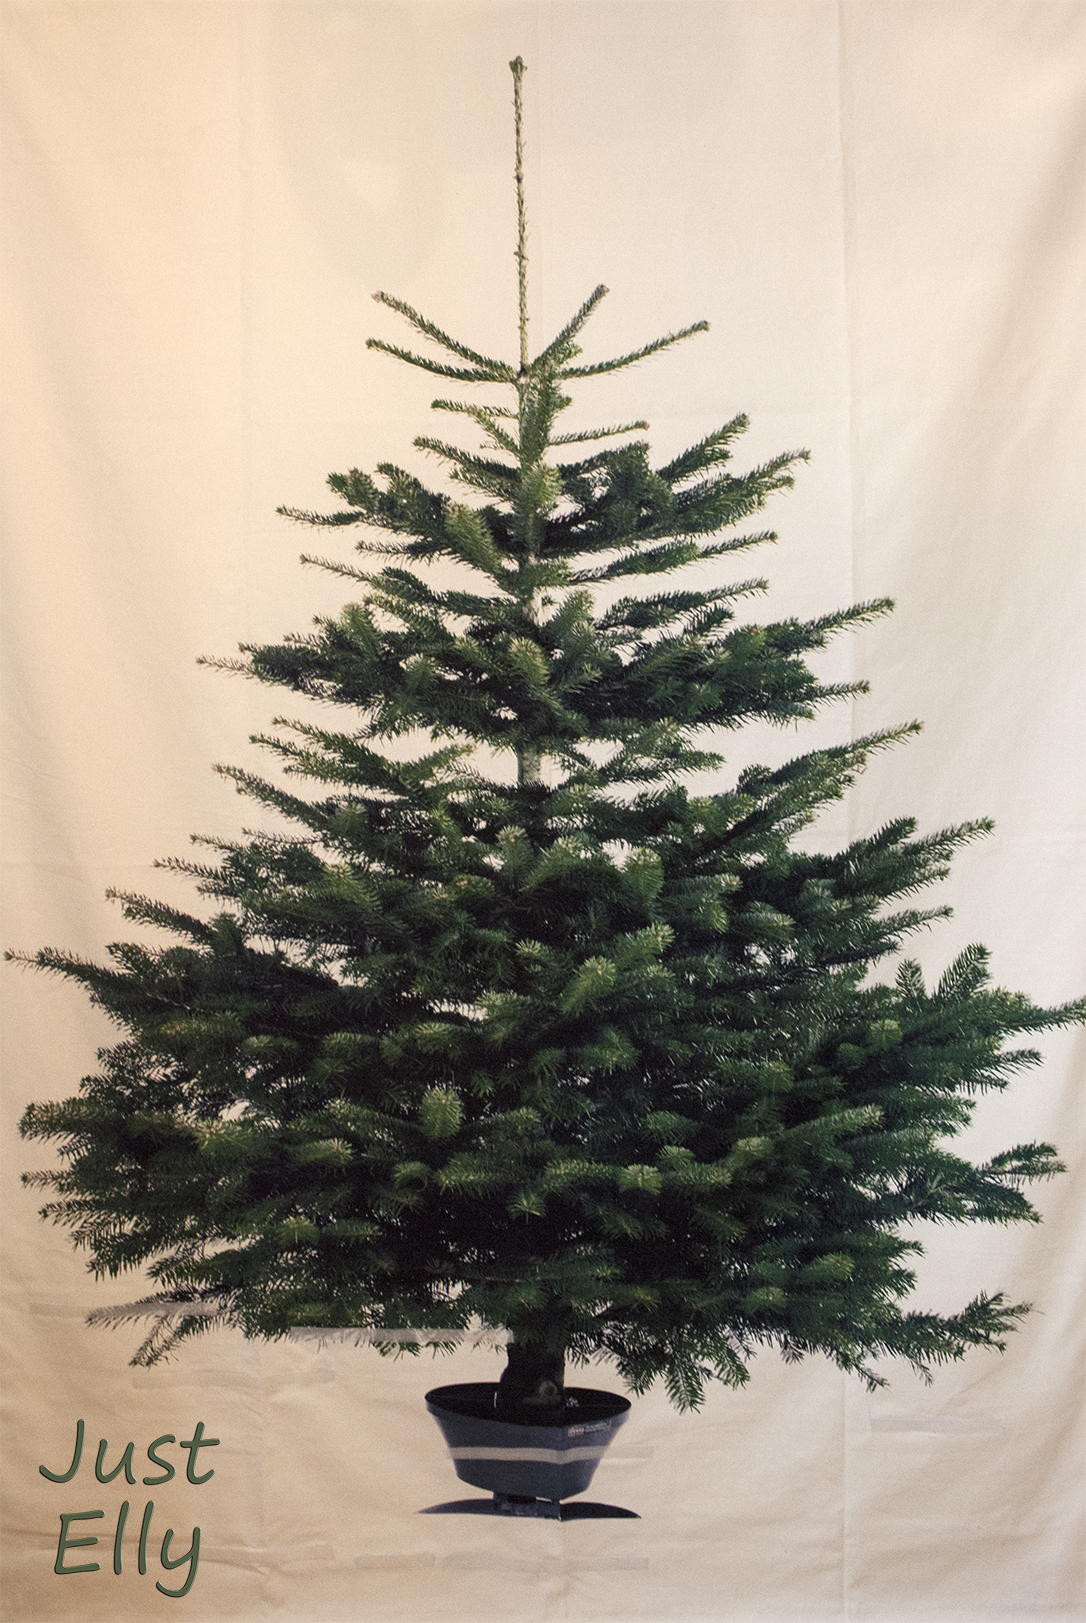 How To Make The Ikea Christmas Tree Fabric Into A 3d Wall Hanging